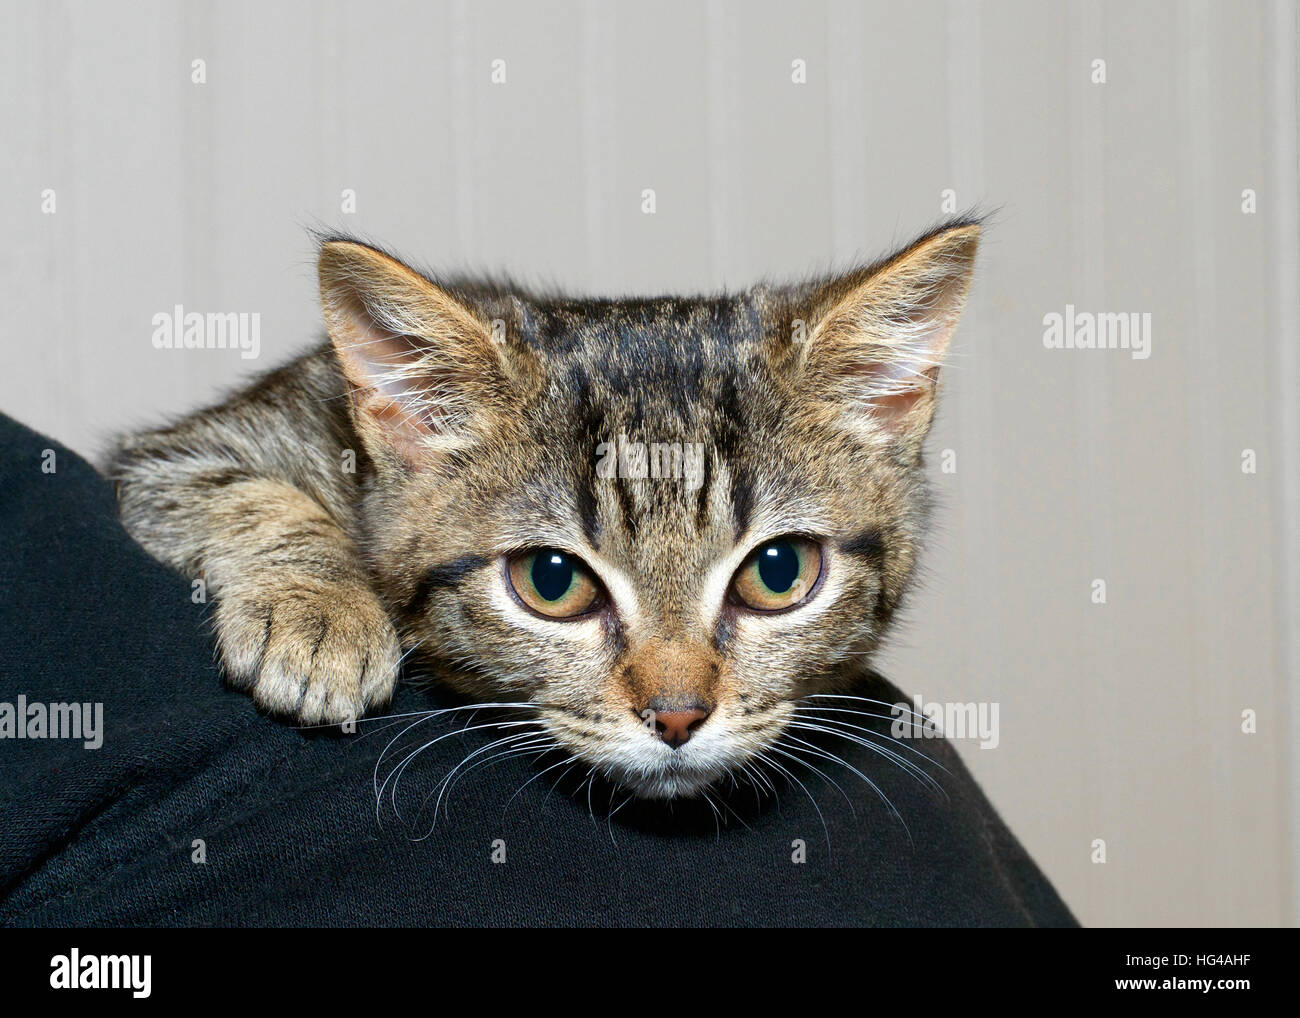 gray and black striped tabby kitten clinging to the shoulder of person, nervous and afraid feeling somewhat secure Stock Photo